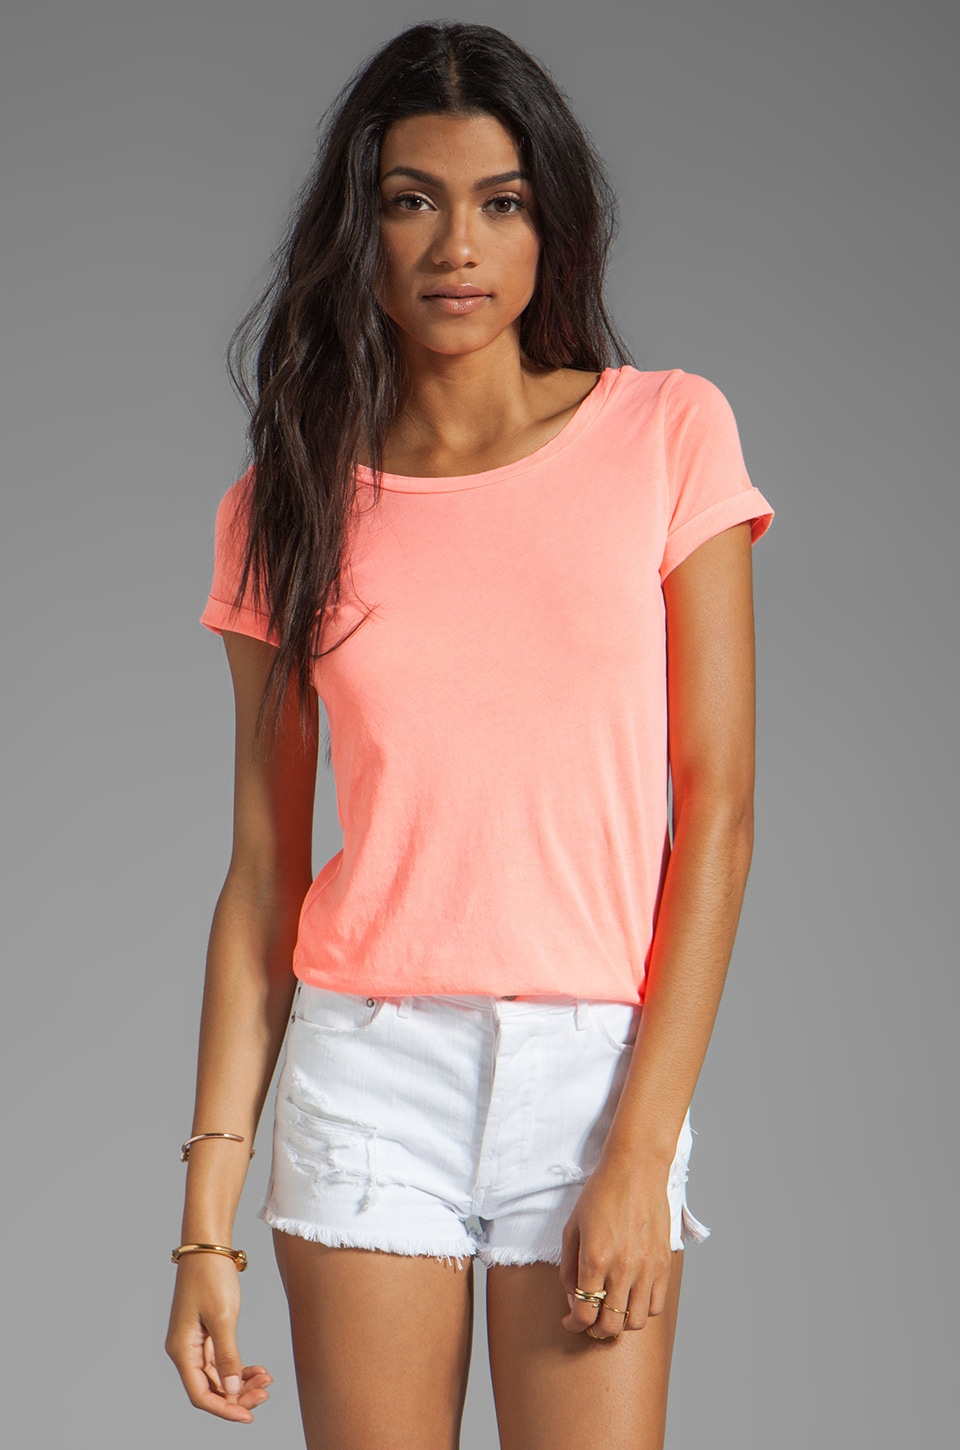 Splendid Vintage Whisper Low Back Tee in Neon Coral